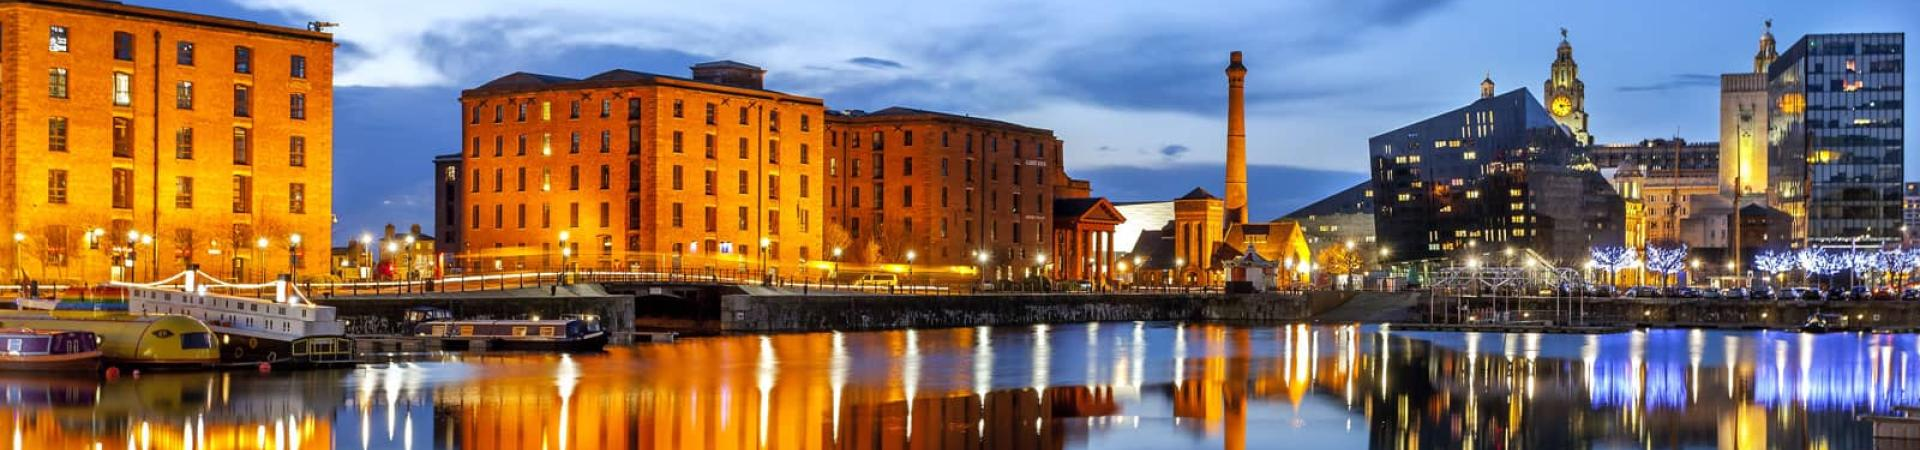 Liverpool docks lit up at night